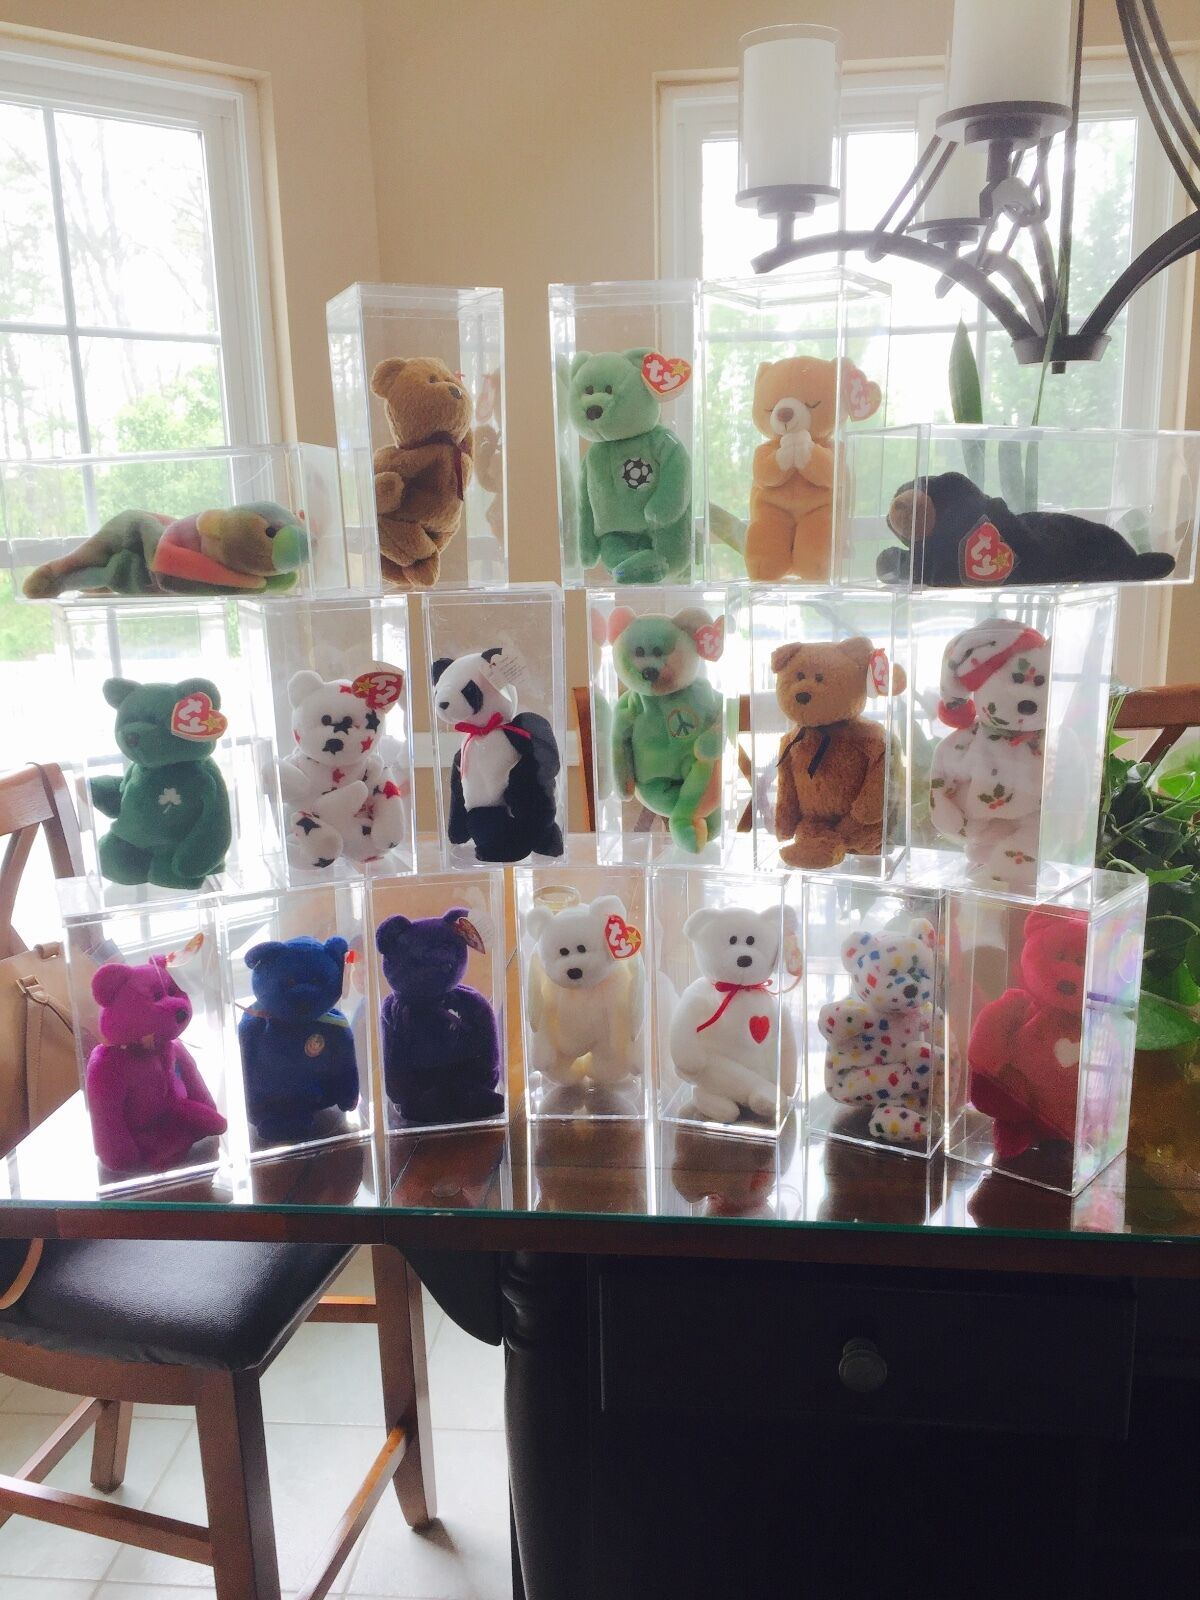 18 18 18 Rare Beanie Babies (1994-2000)  in Mint Conditions in Cases 7a69ae